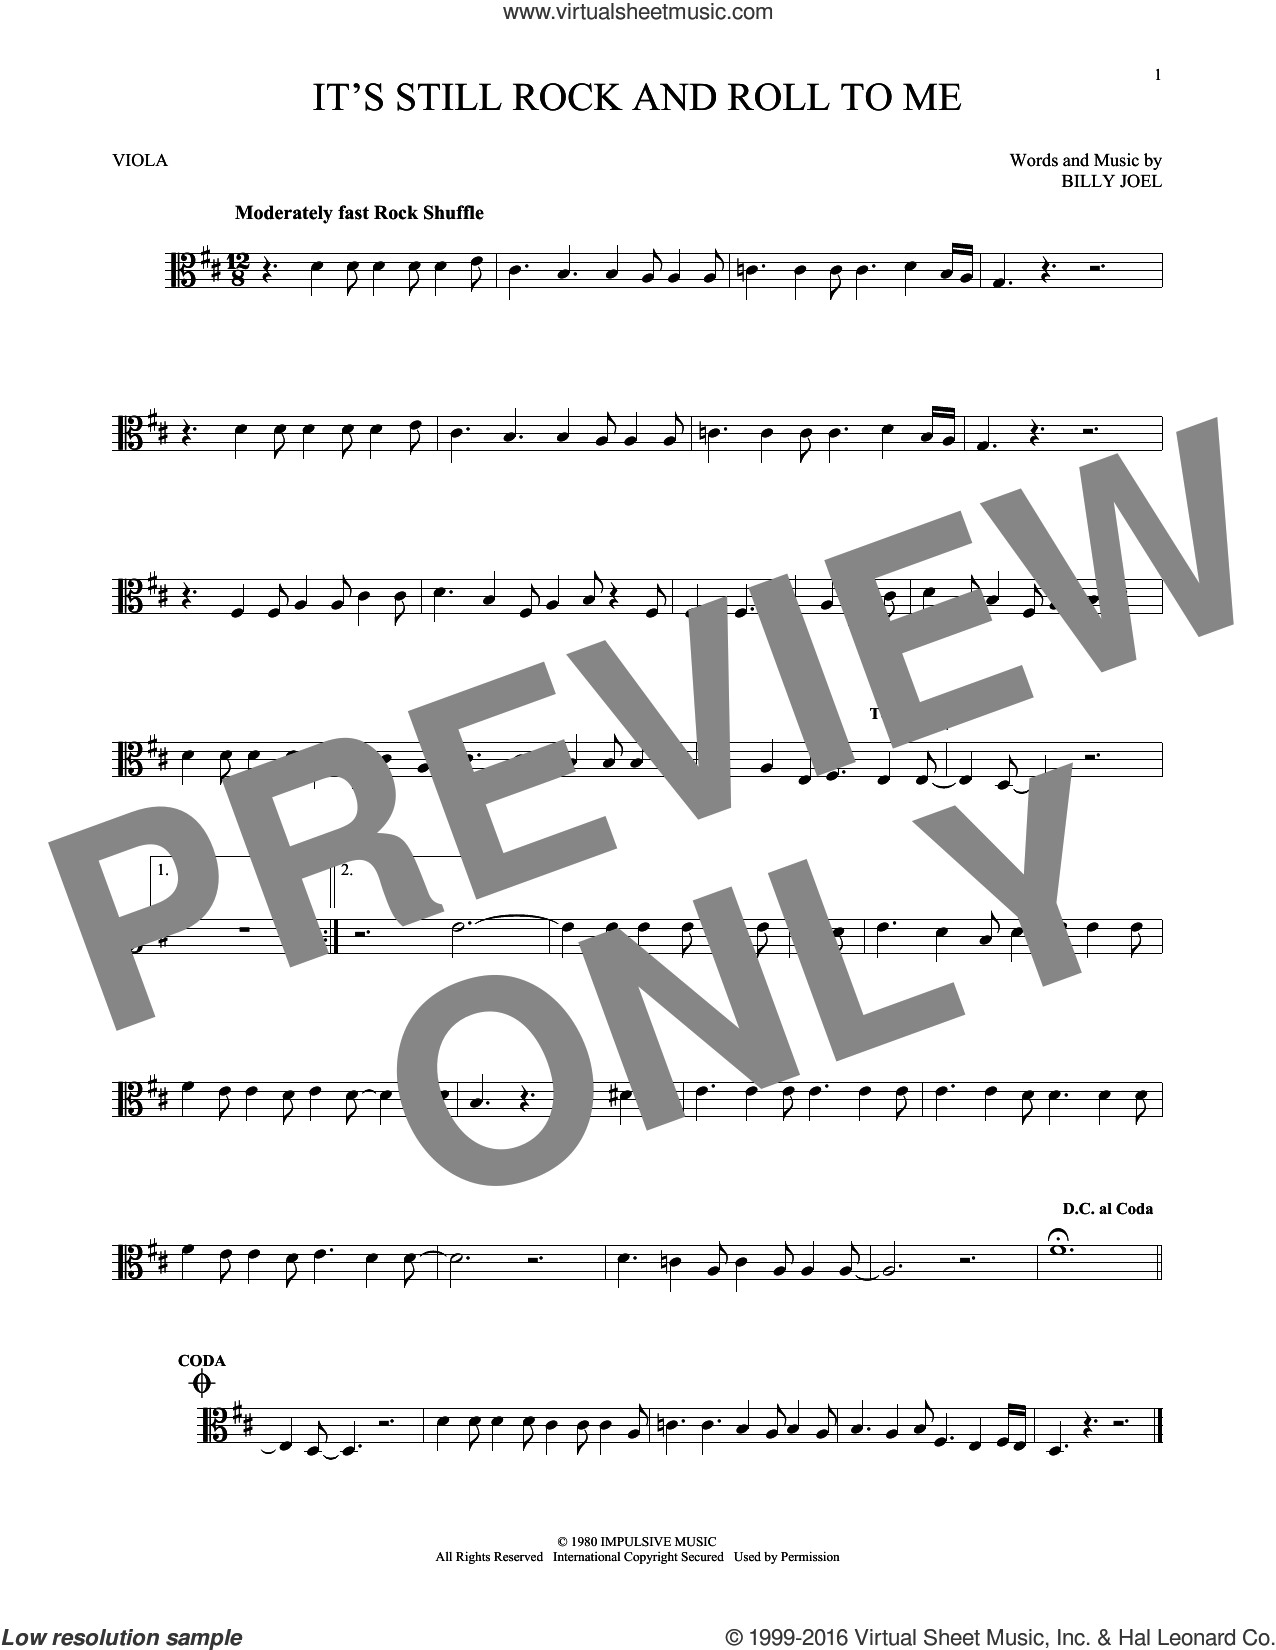 It's Still Rock And Roll To Me sheet music for viola solo by Billy Joel. Score Image Preview.